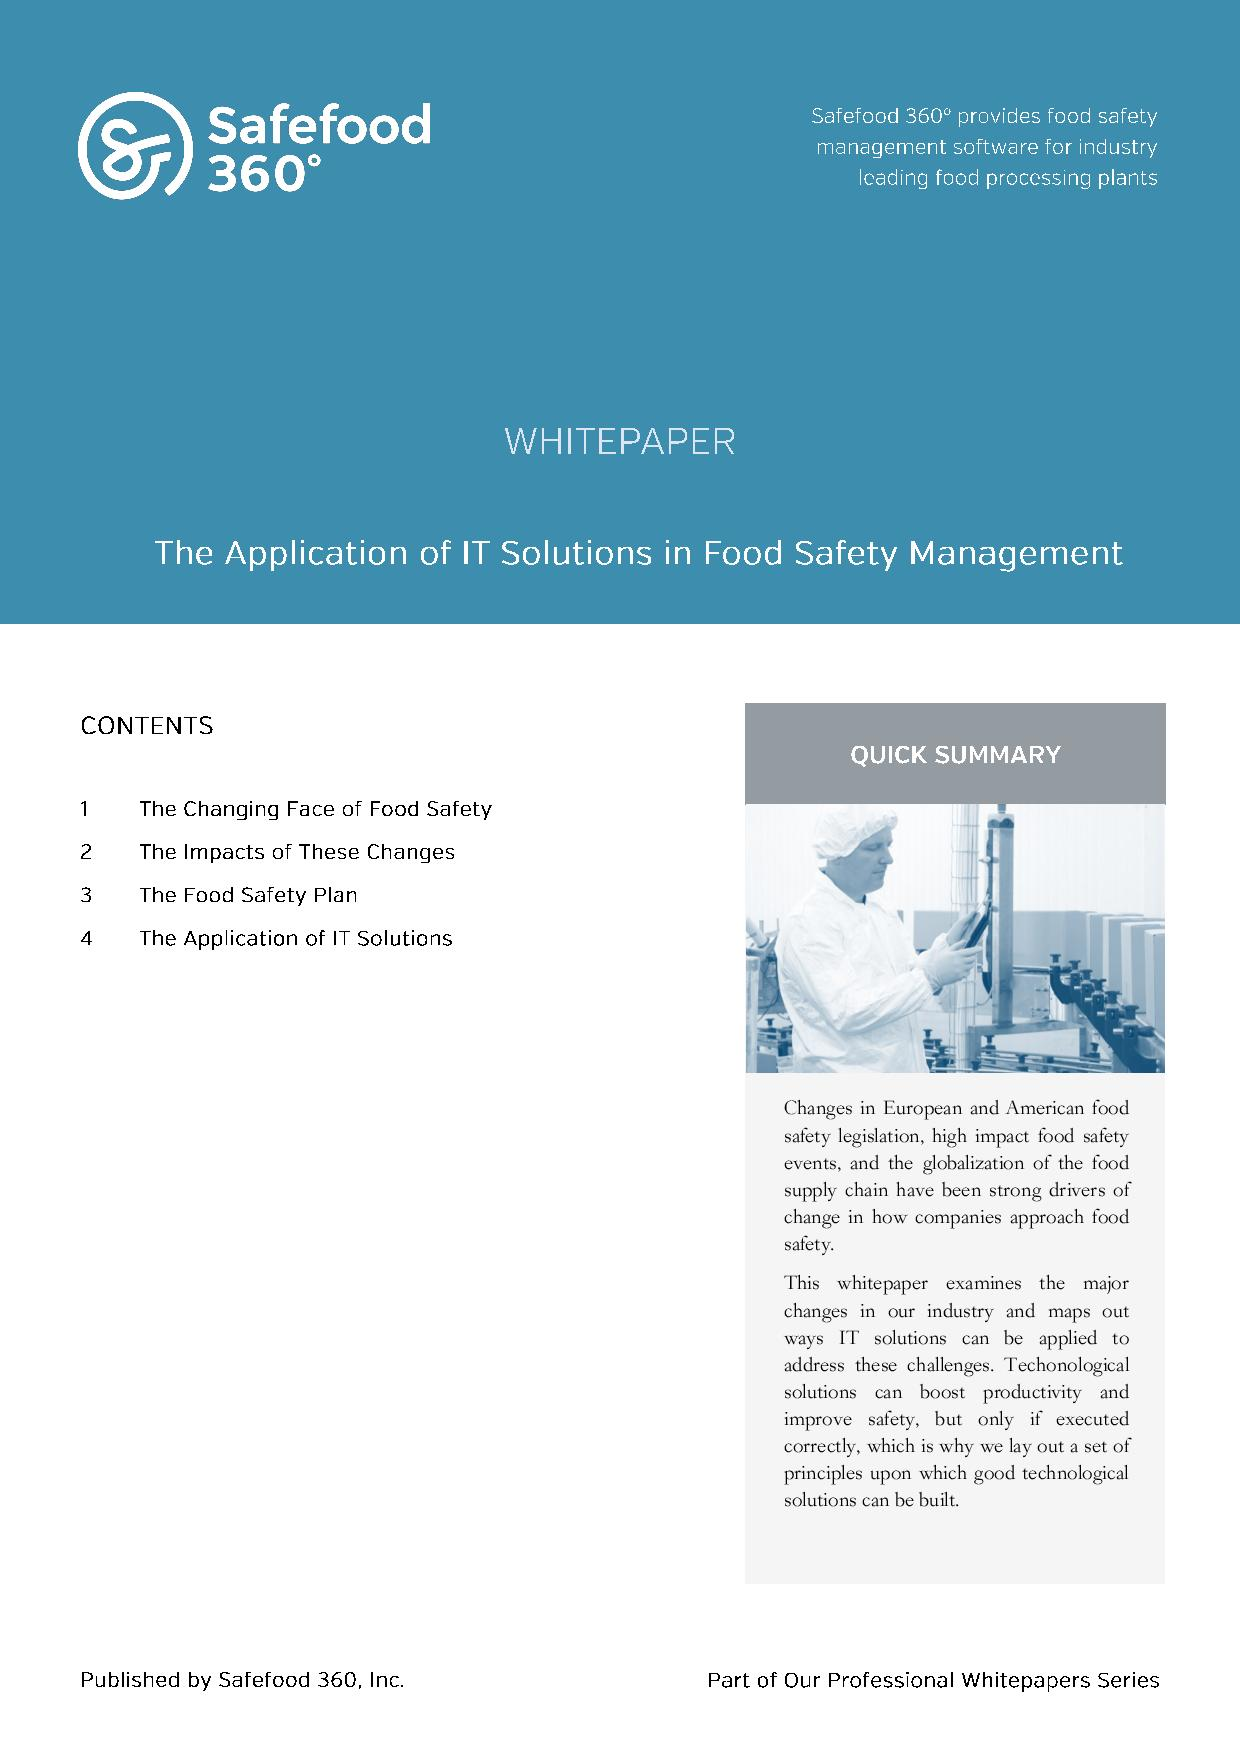 Application of IT solutions in Food Safety Management